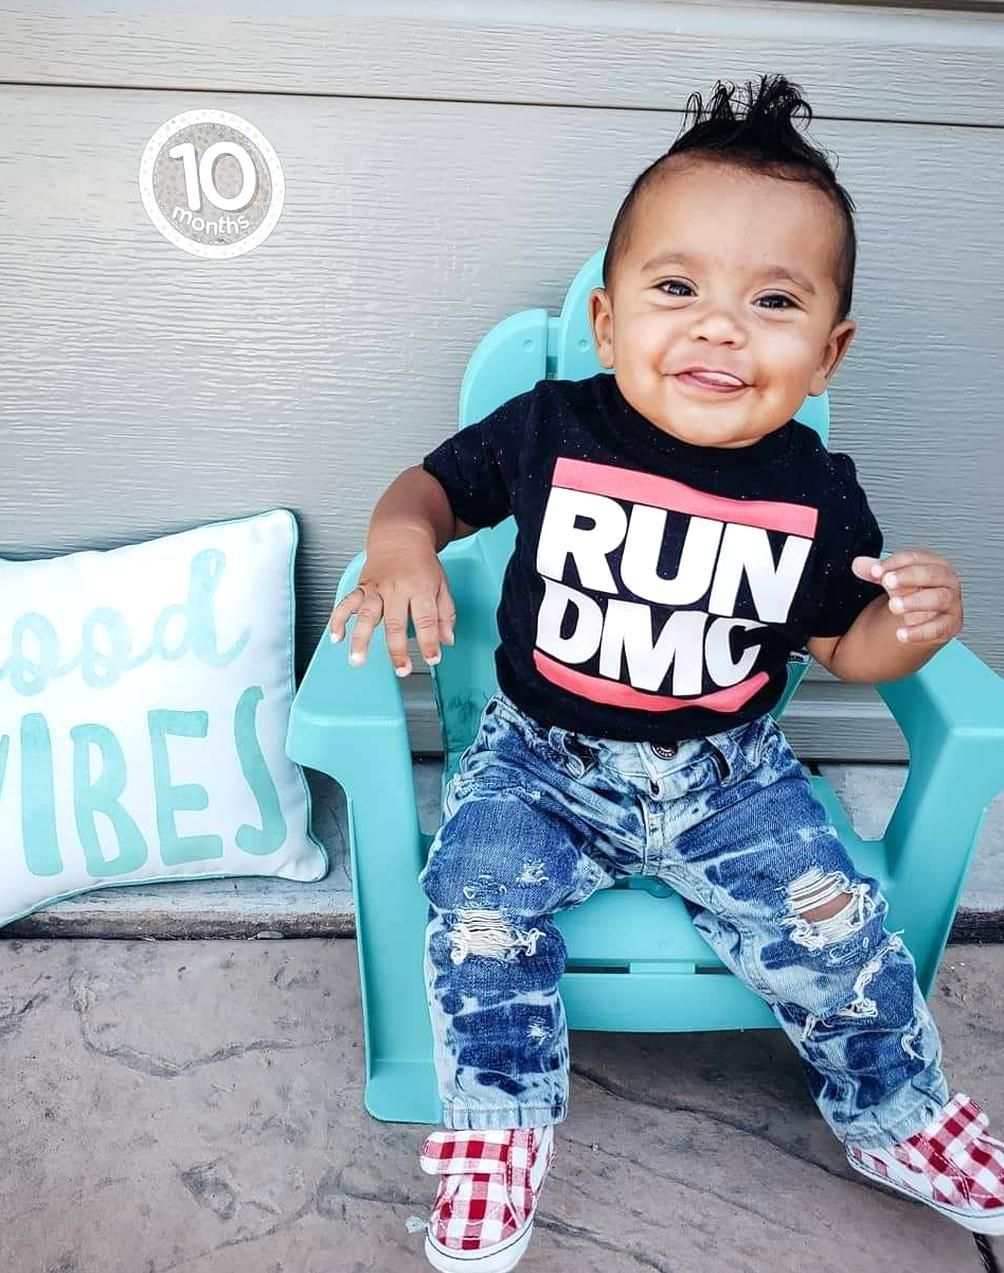 Baby Swag Baby Boy Style Mixed Race Twin Boy Twin Baby Boy Clothes Baby Vans Toddler Jeans 10 Month Old Bab In 2020 Baby Boy Outfits Baby Boy Fashion Baby Boy Blankets